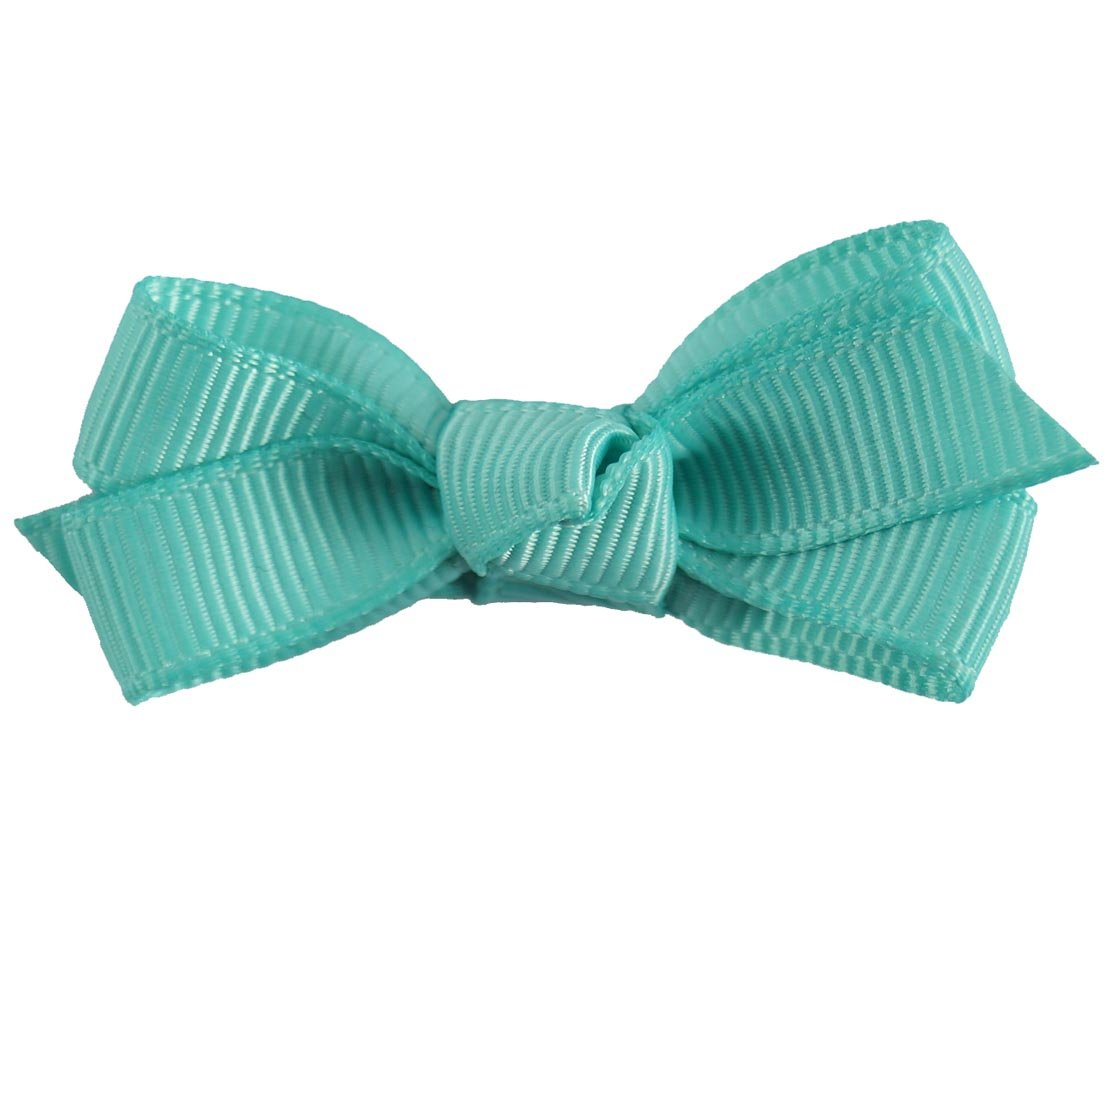 CN Boutique Baby Girls Hair Bows Alligator Clips Grosgrain Ribbon Barrettes For Teens Kids Toddlers 15 Colors 30pcs by C.N. (Image #9)